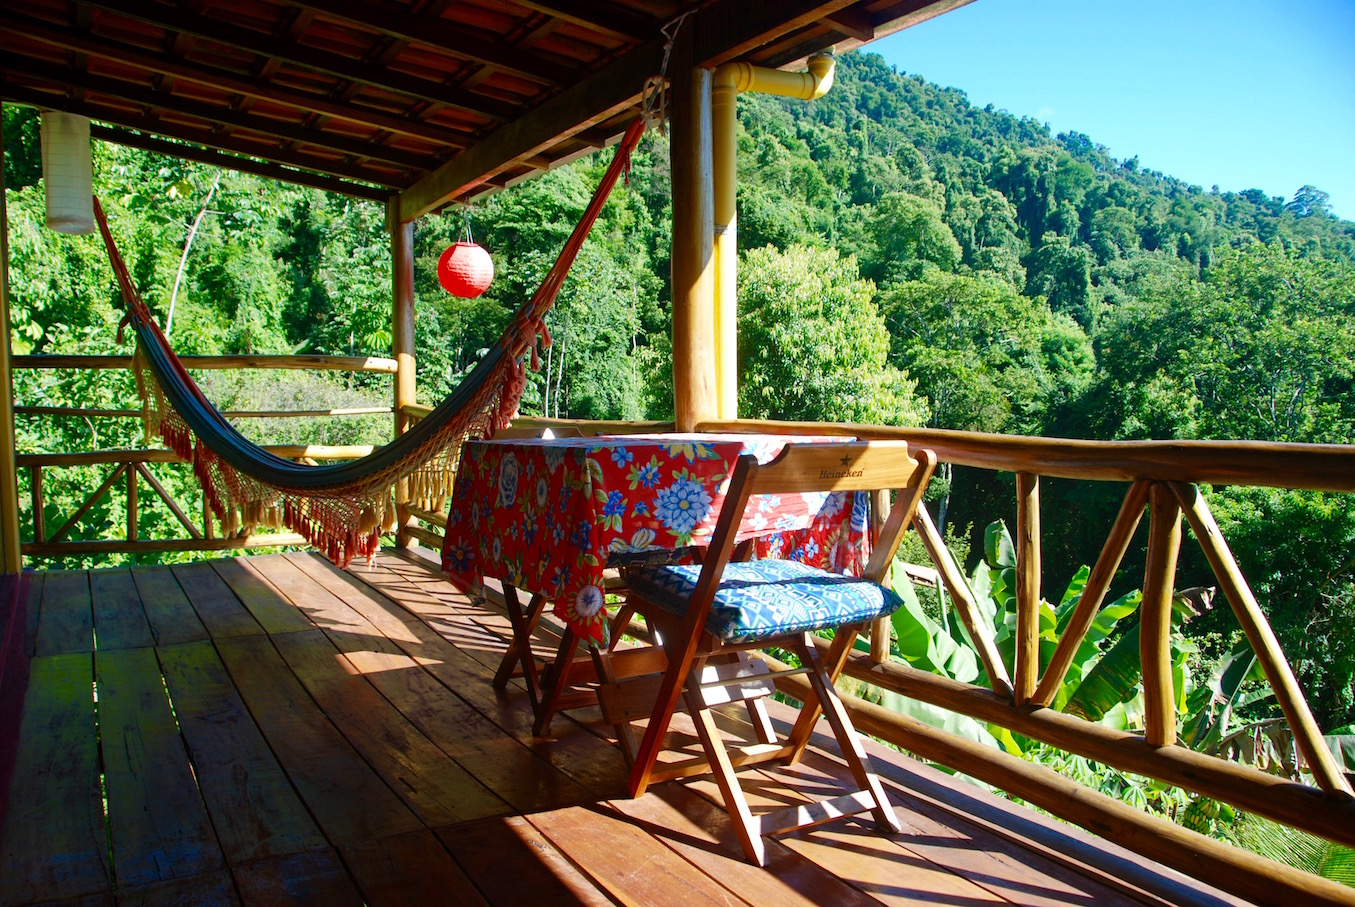 Chalet Amarelo - the balcony